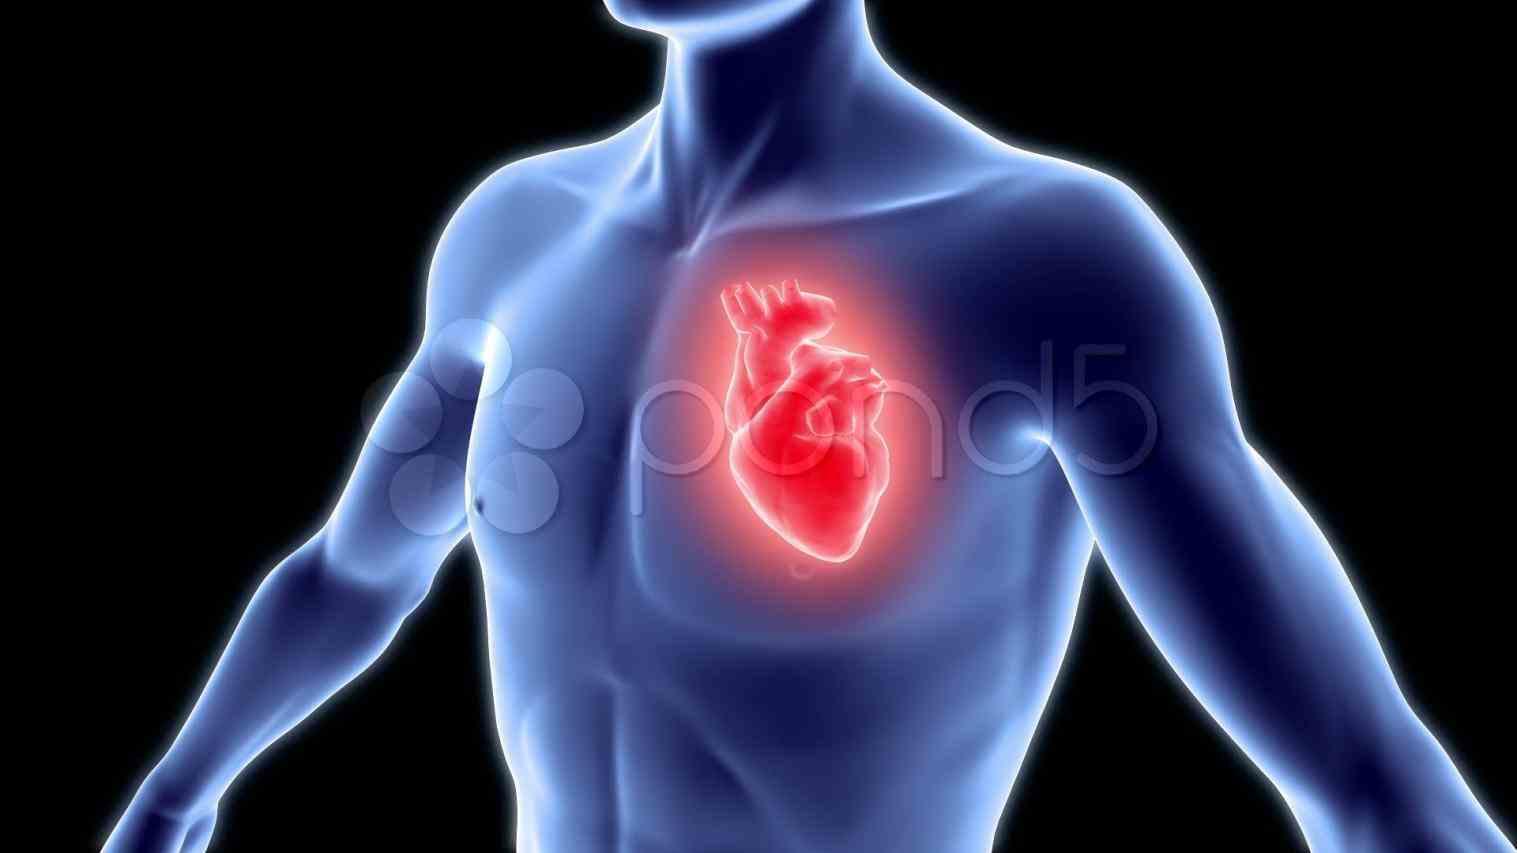 stock images vectors or photos for real human heart you related anatomy brain see Image Of Heart In Human